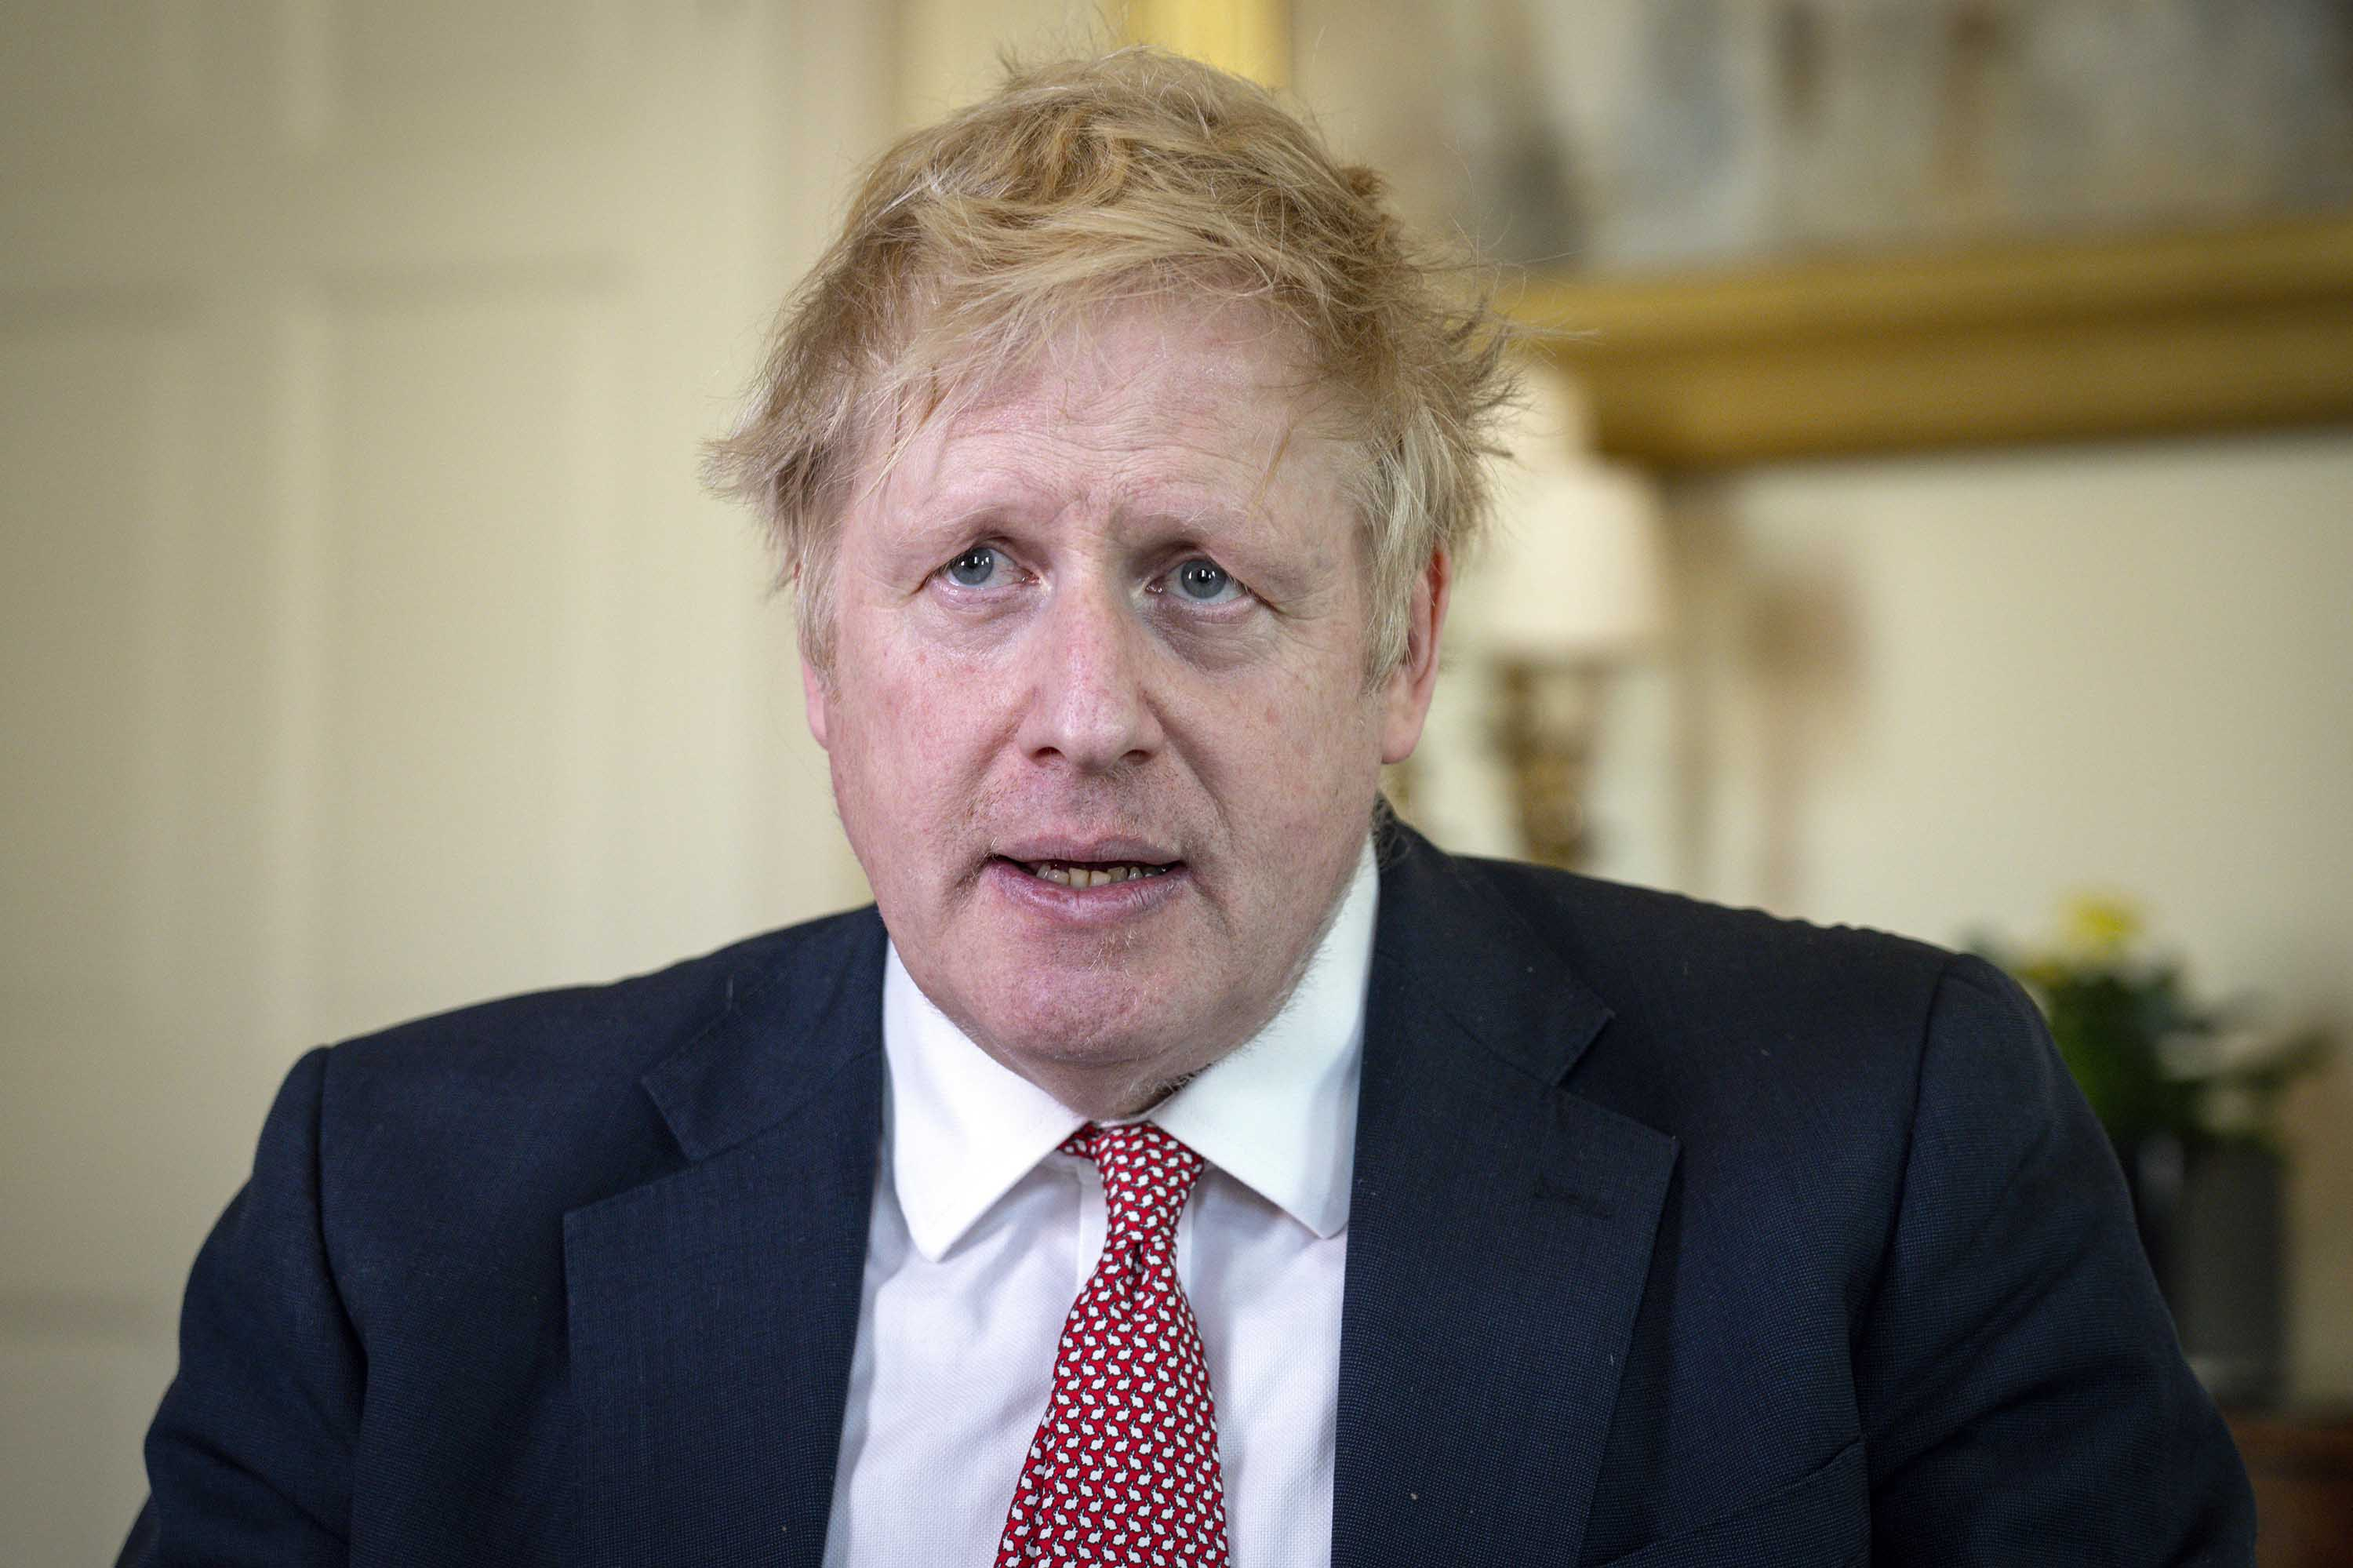 British Prime Minister Boris Johnson is pictured on April 12 in London, England.